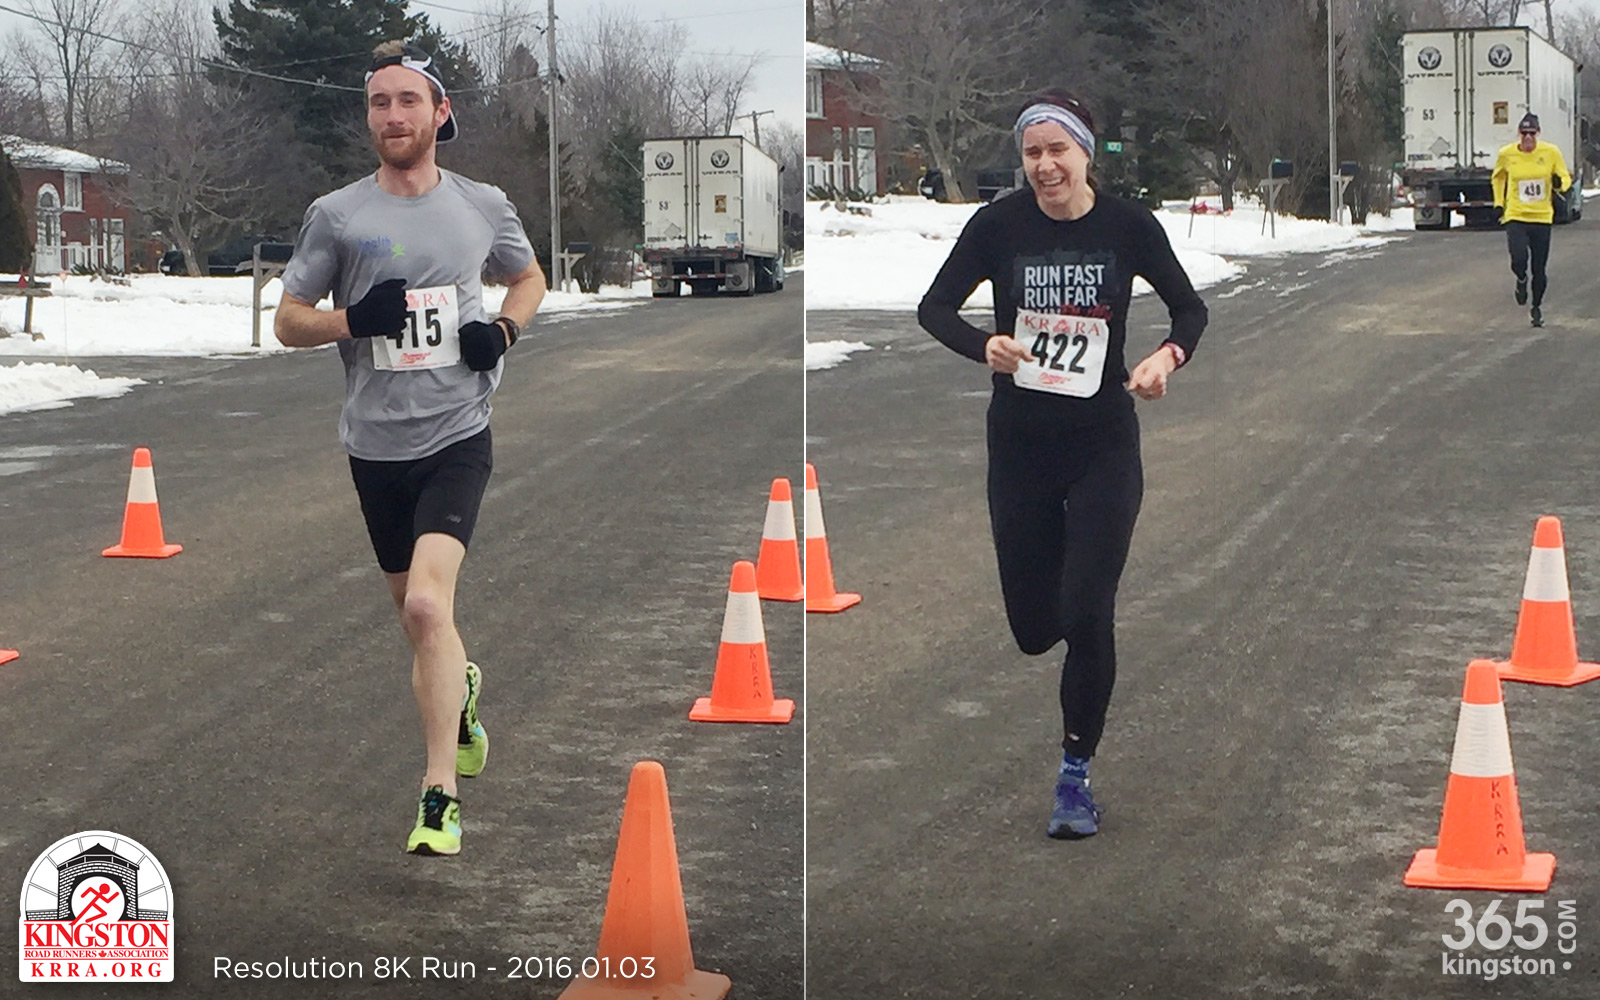 Top finishers Robert Asselstine and Suzanne Kerr. Photo credit: Bryan Lambert, Running by Design.